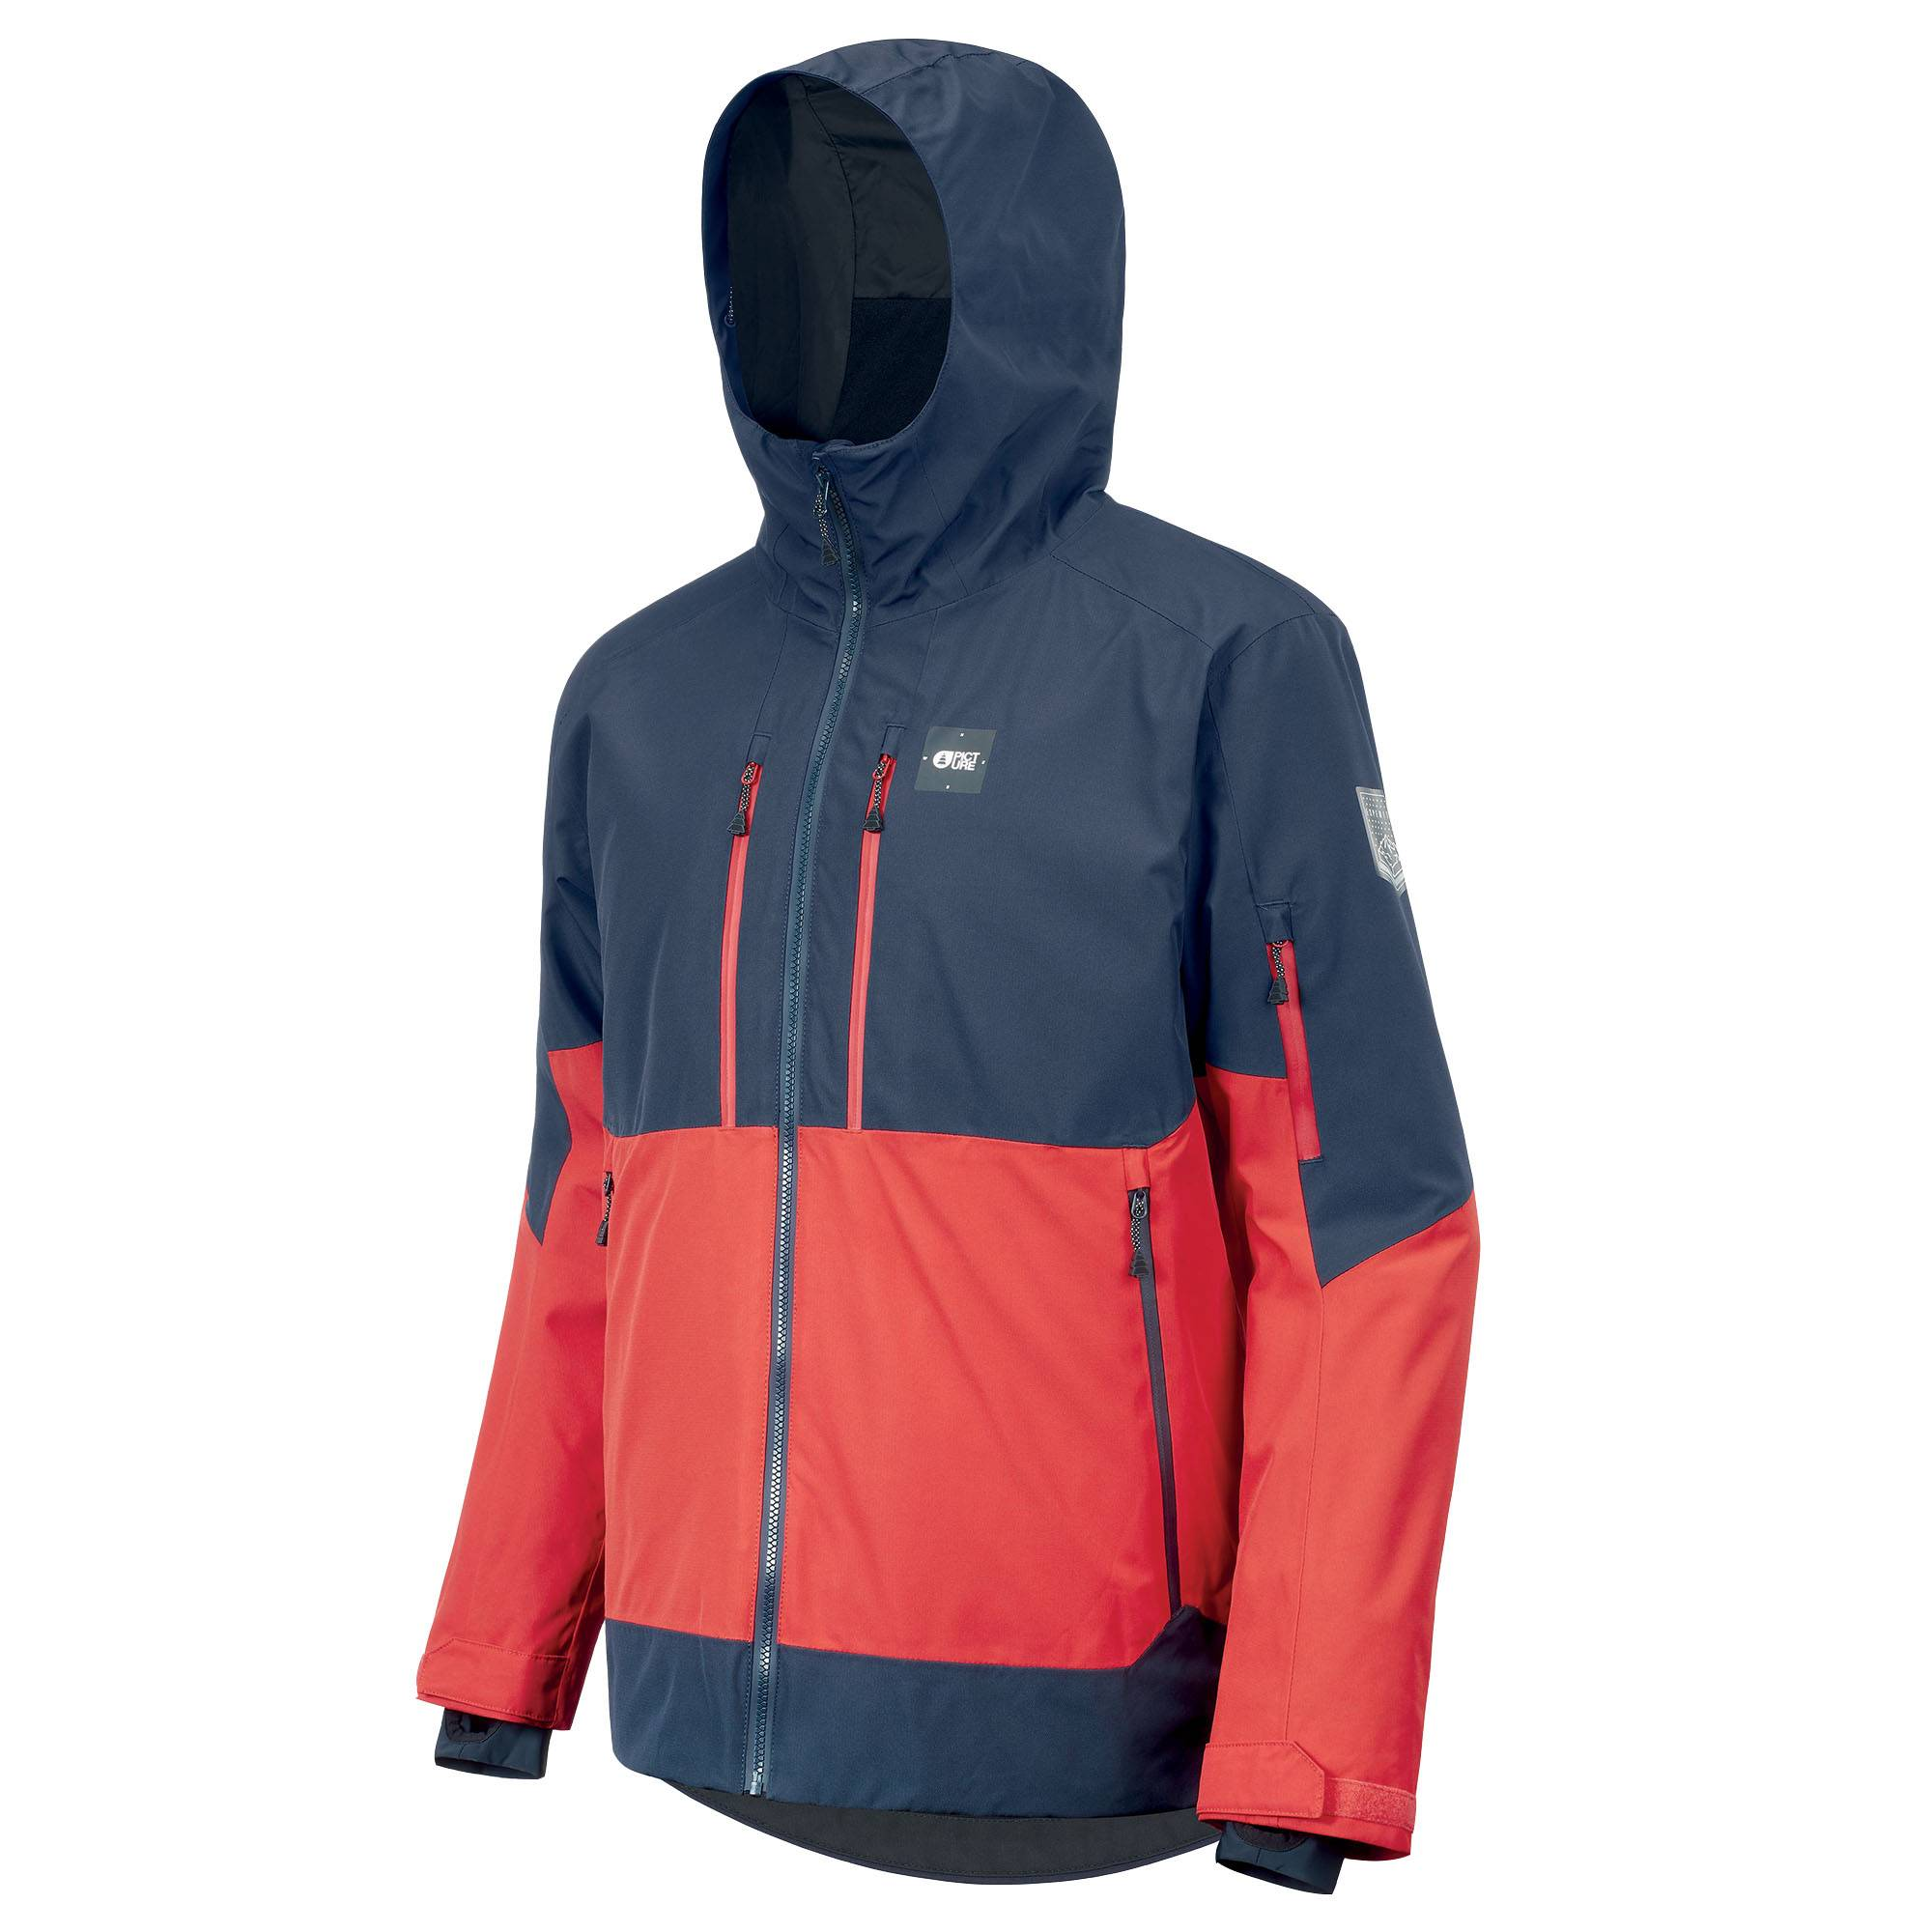 Picture Organic Clothing Men's Duncan 3 In 1 Snow Jacket  - Red - Size: Extra Large